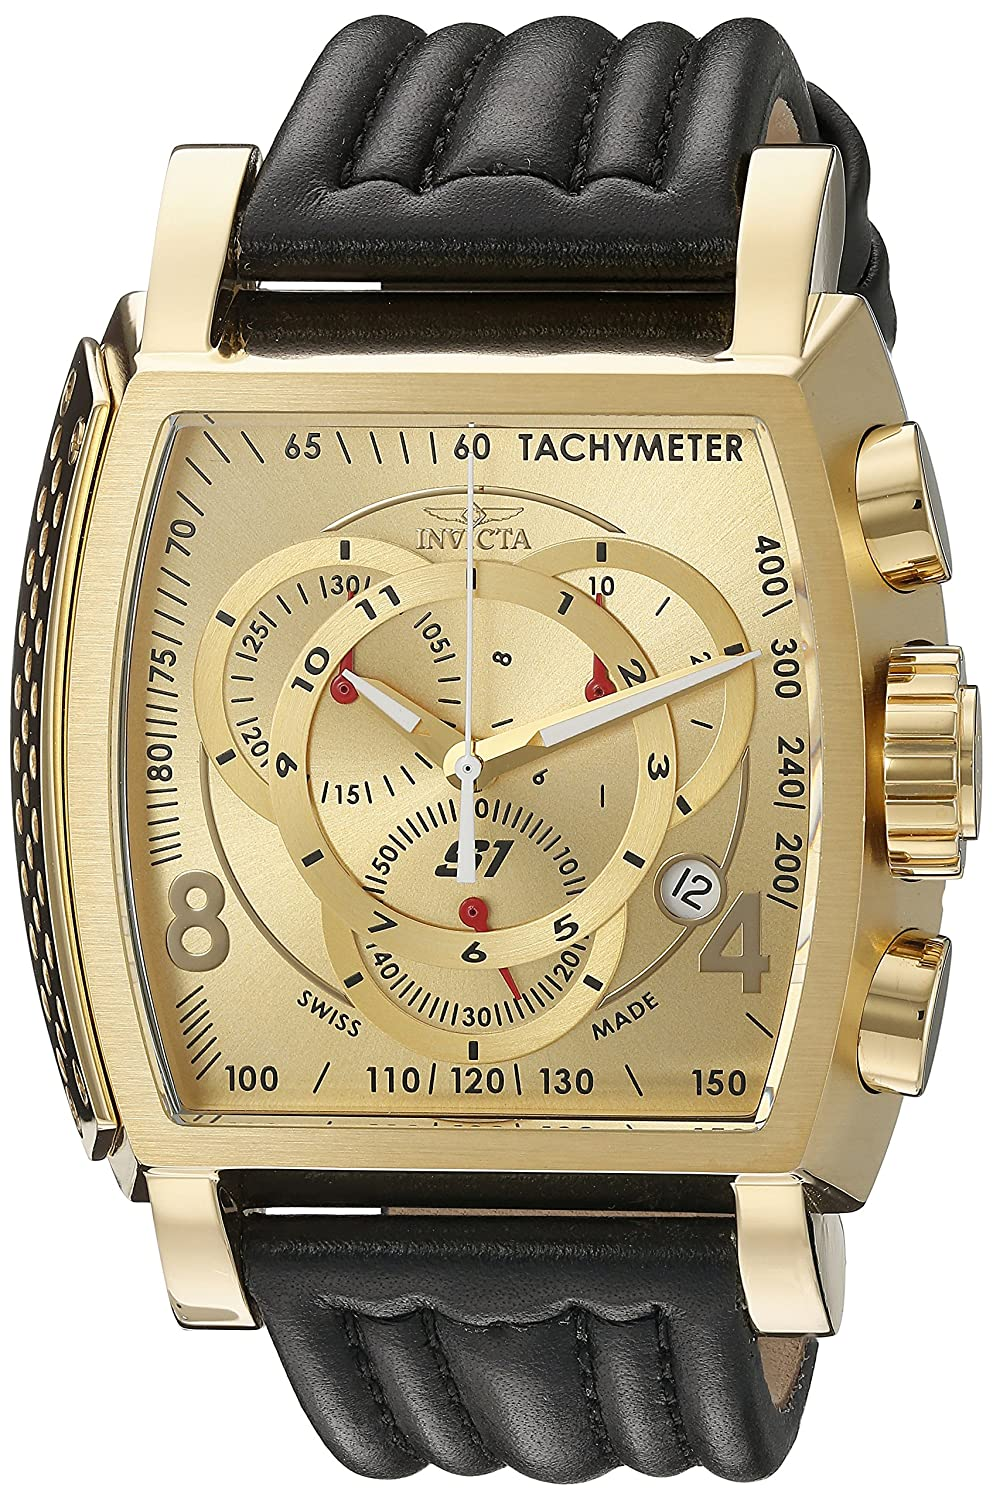 Invicta Men s 20241 S1 Rally 18k Ion-Plated Stainless Steel Watch with Black Leather Band